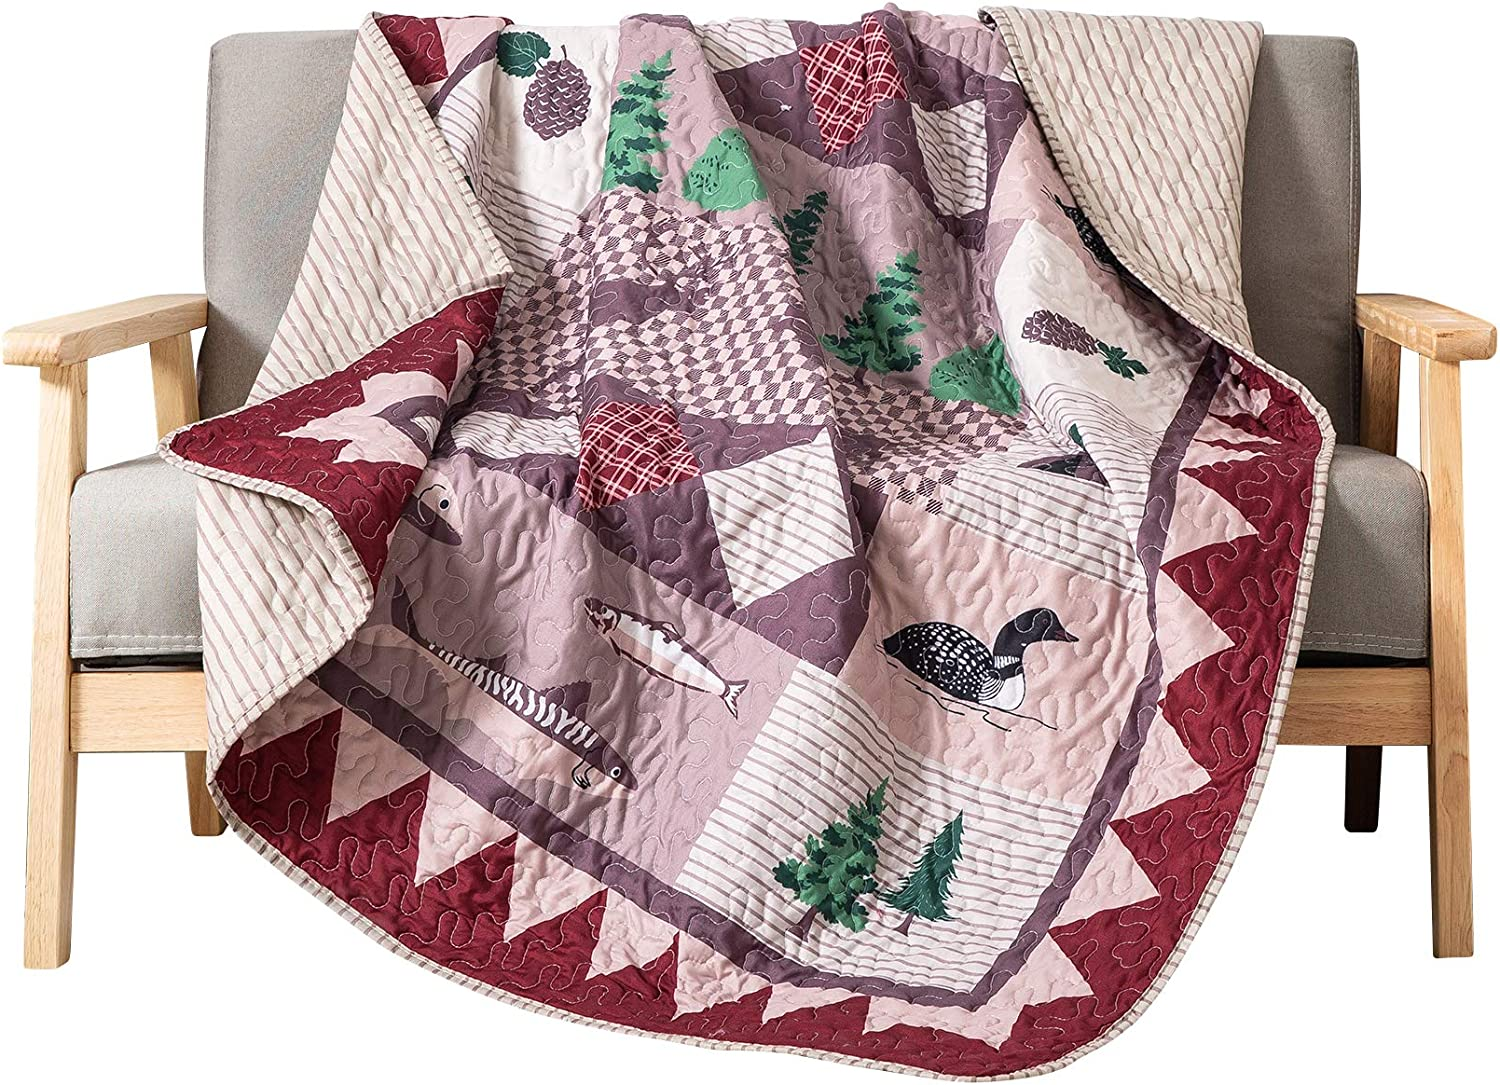 """SLPR Wild Wonders Cabin Lodge Printed Quilted Throw Blanket (50"""" x 60"""") 